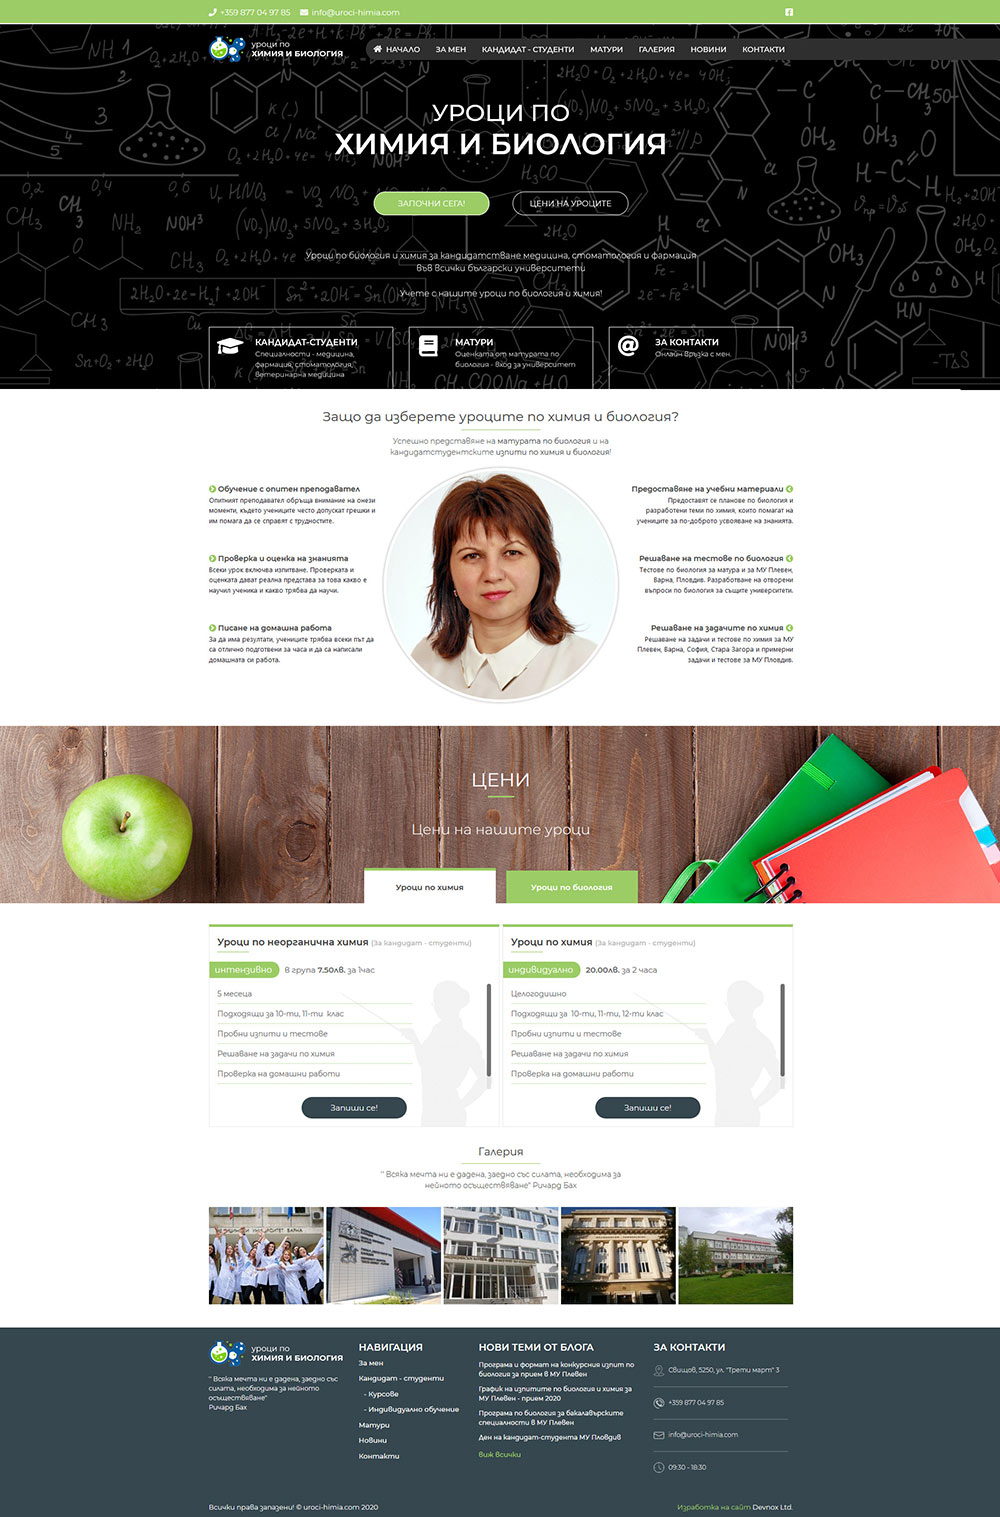 Business website - Uroci-Himia.com